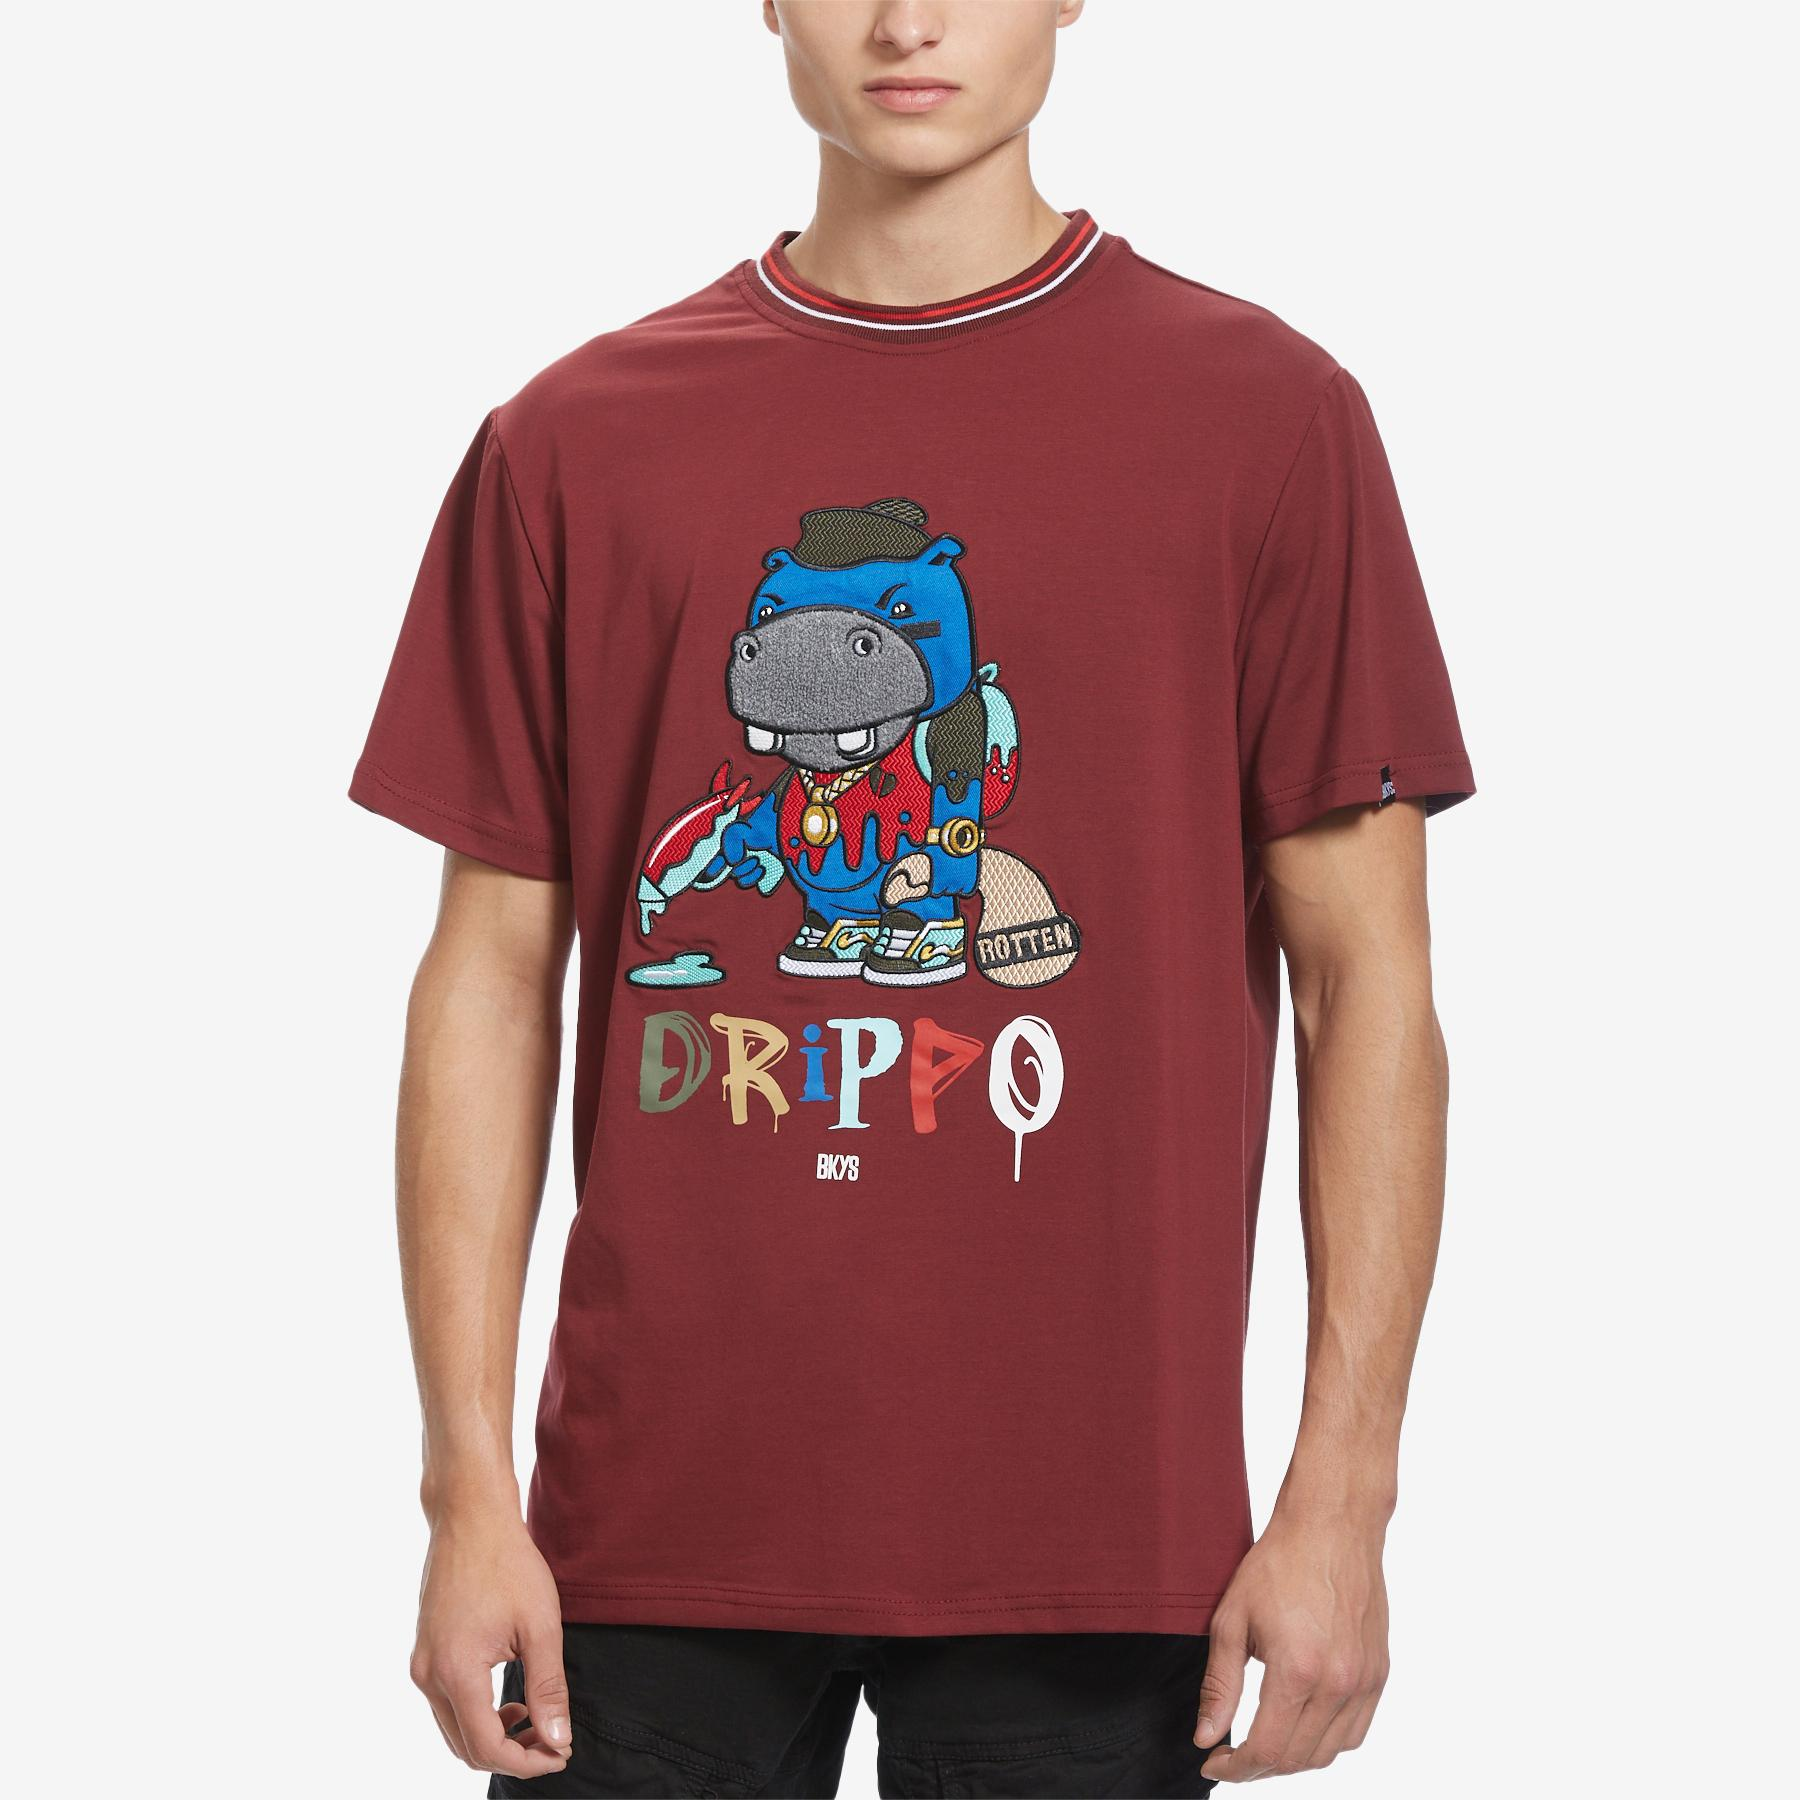 Drippo T- Shirt